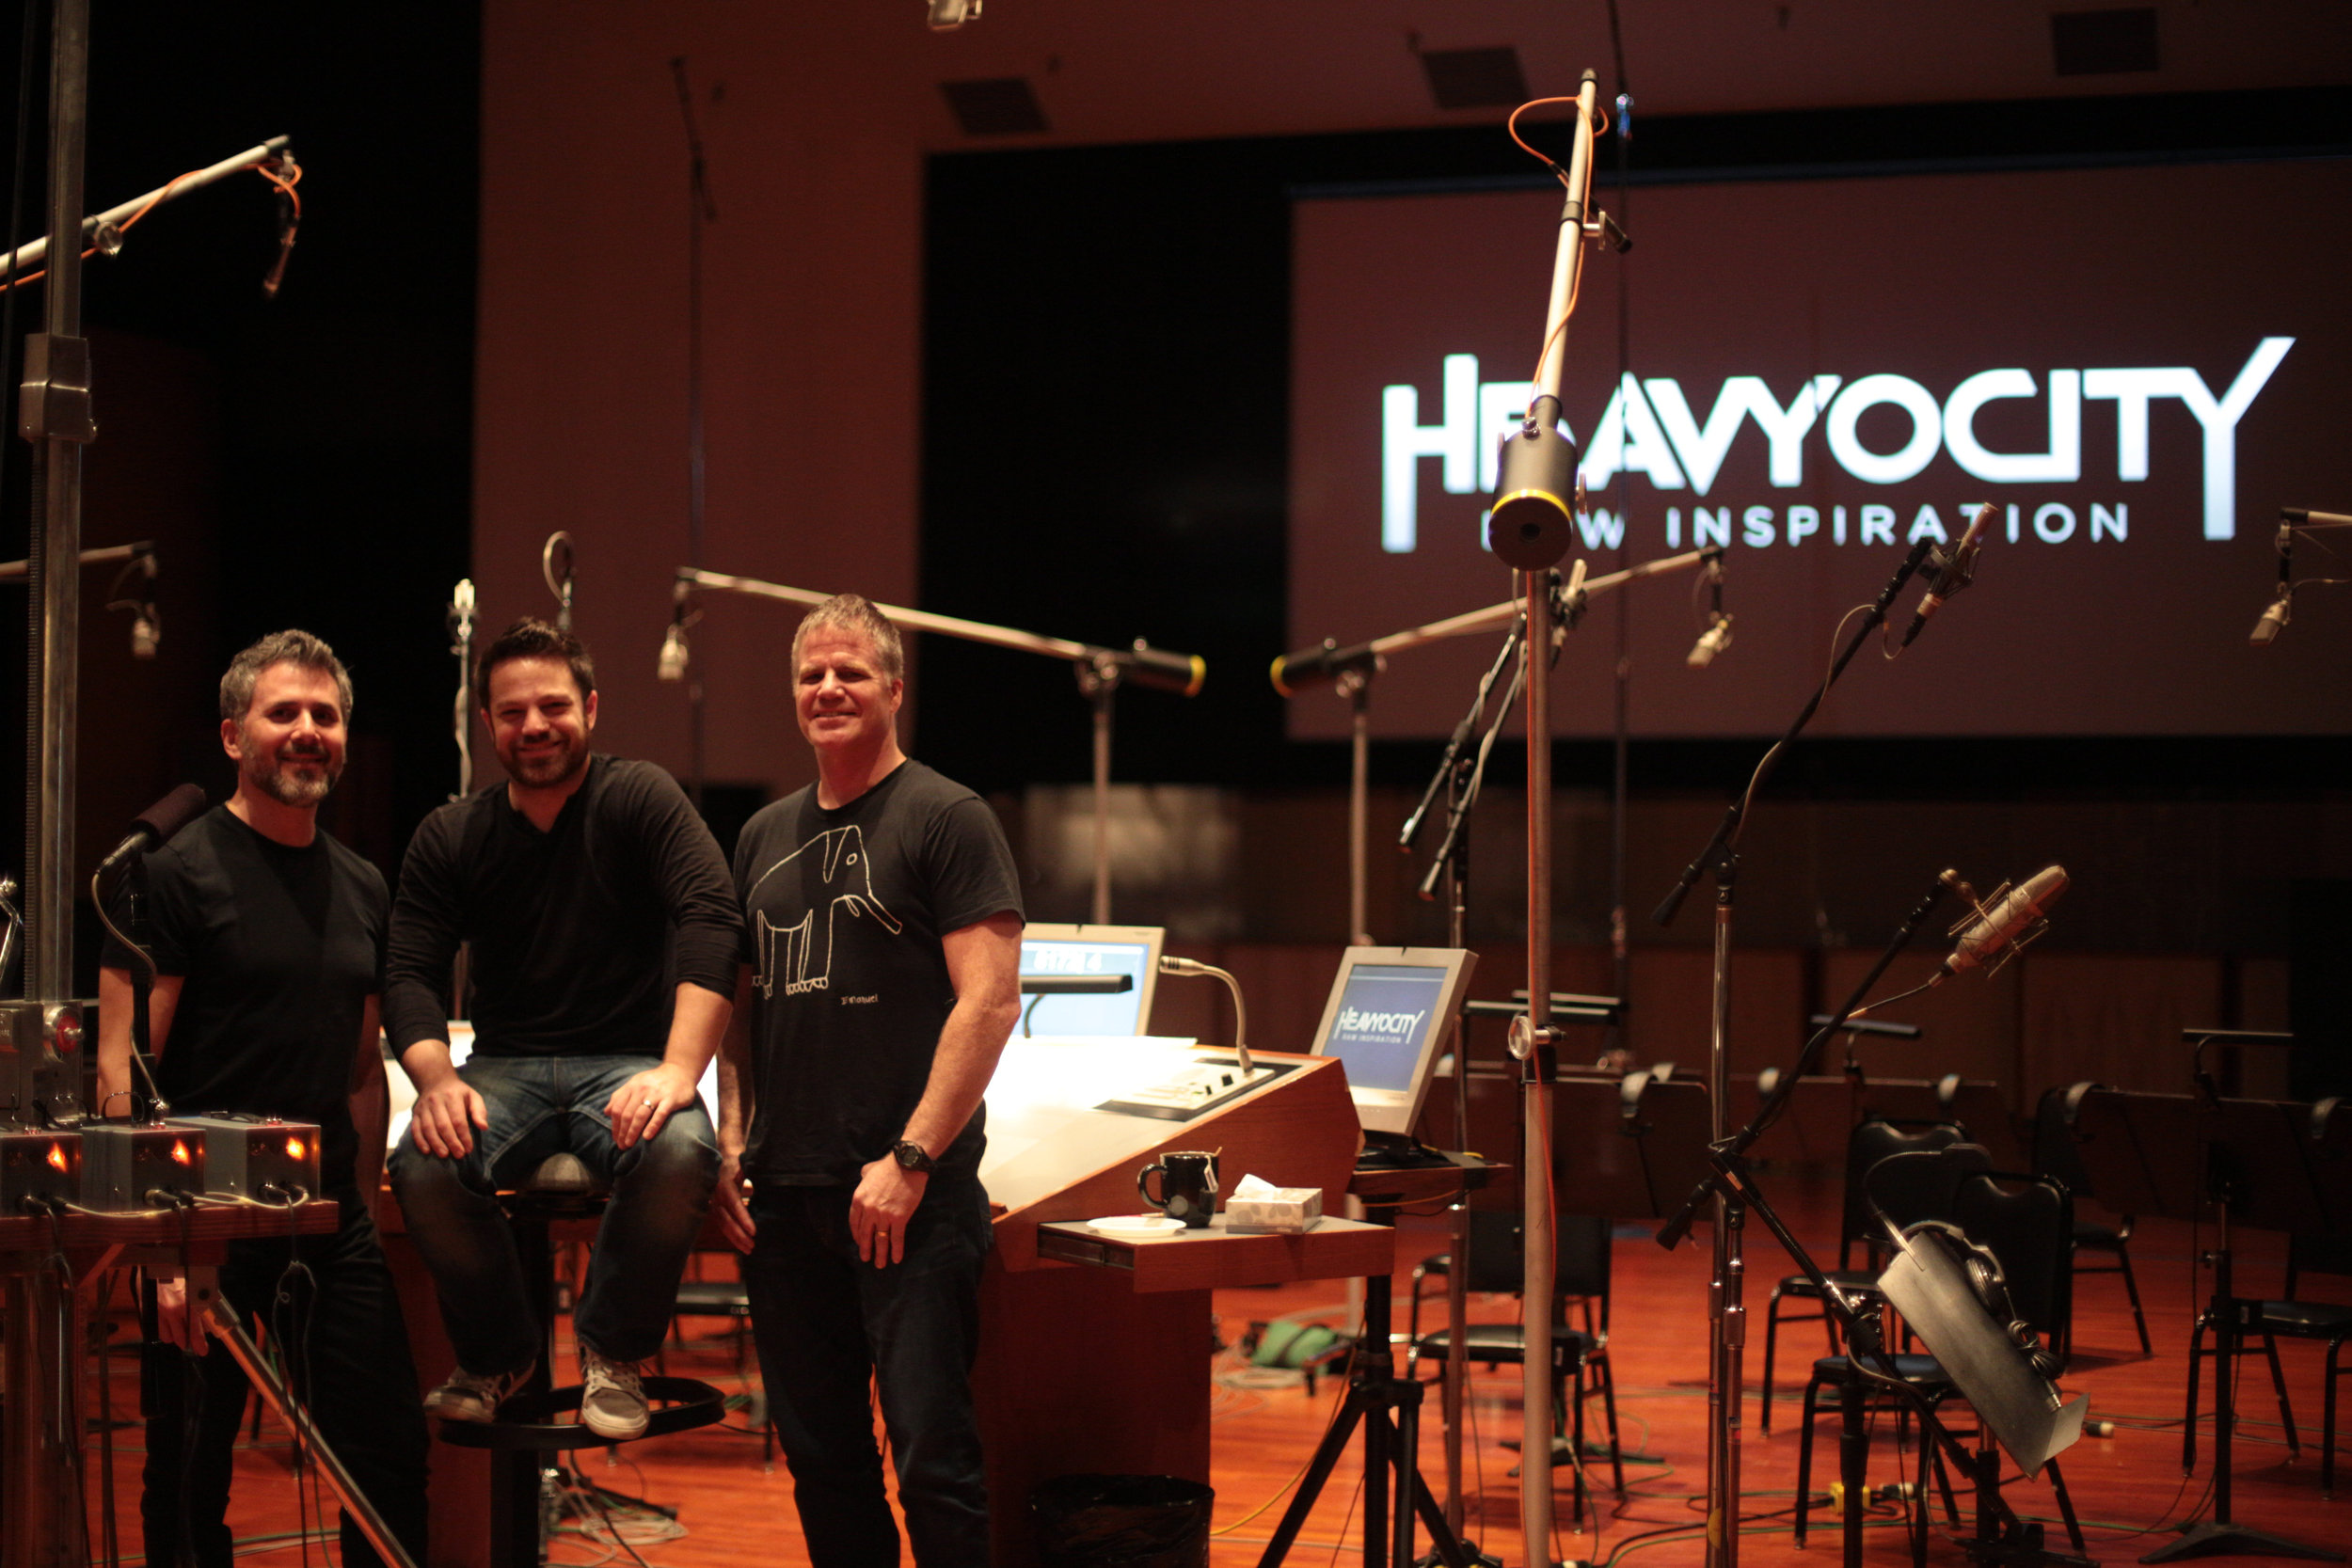 Neil Goldberg, Ari Winter, and Dave Fraser of Heavyocity